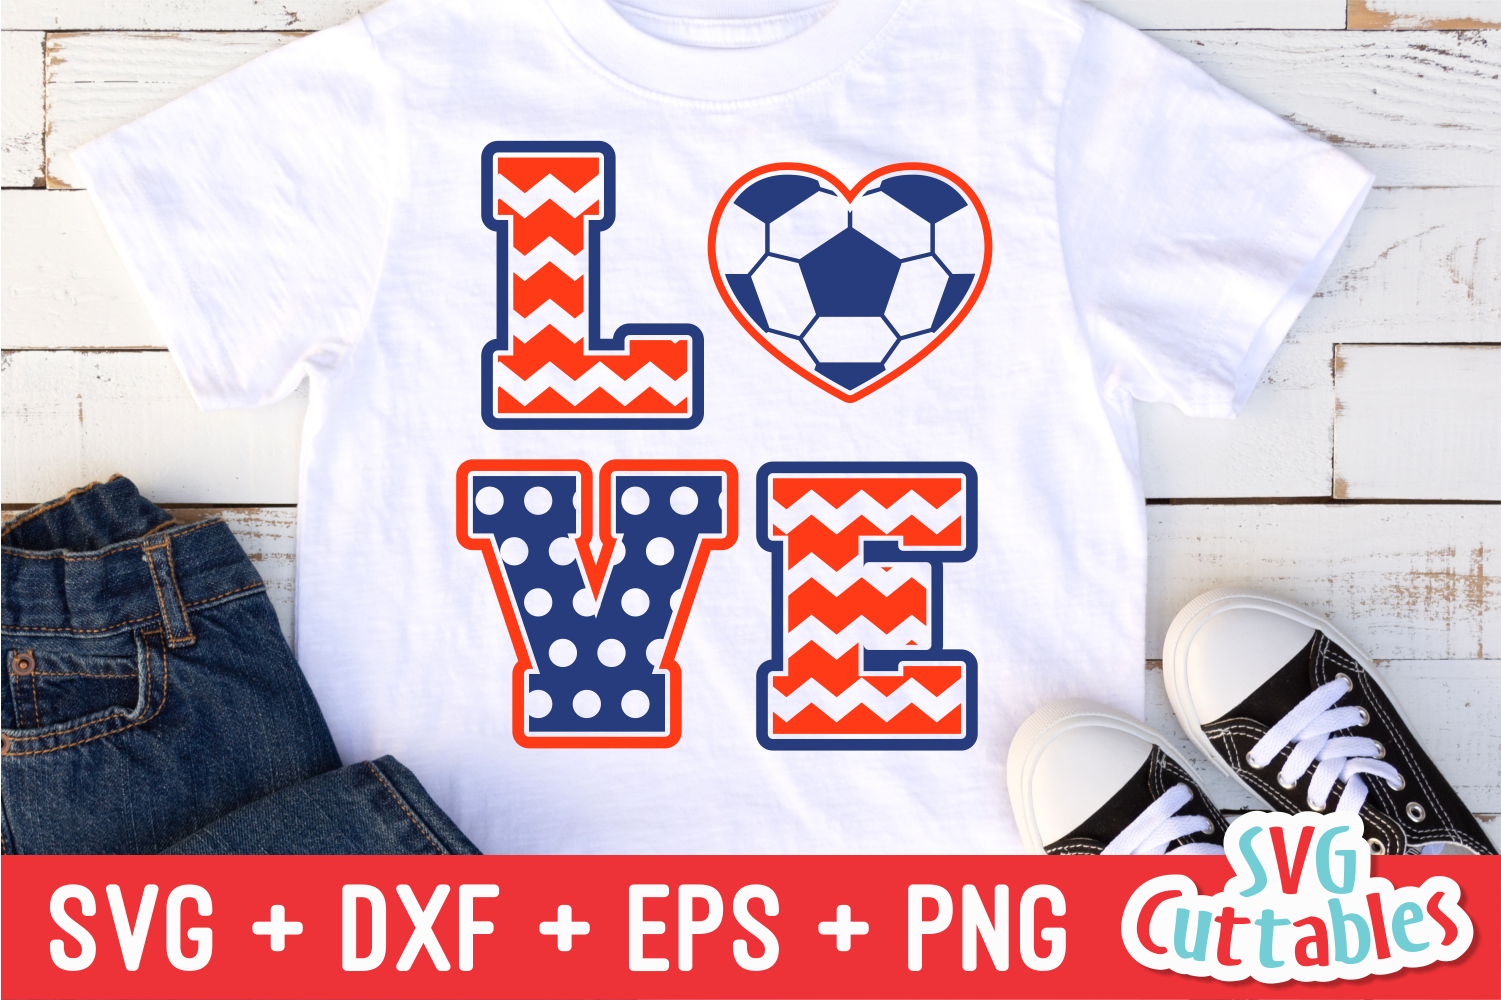 Love Soccer By Svg Cuttables Thehungryjpeg Com